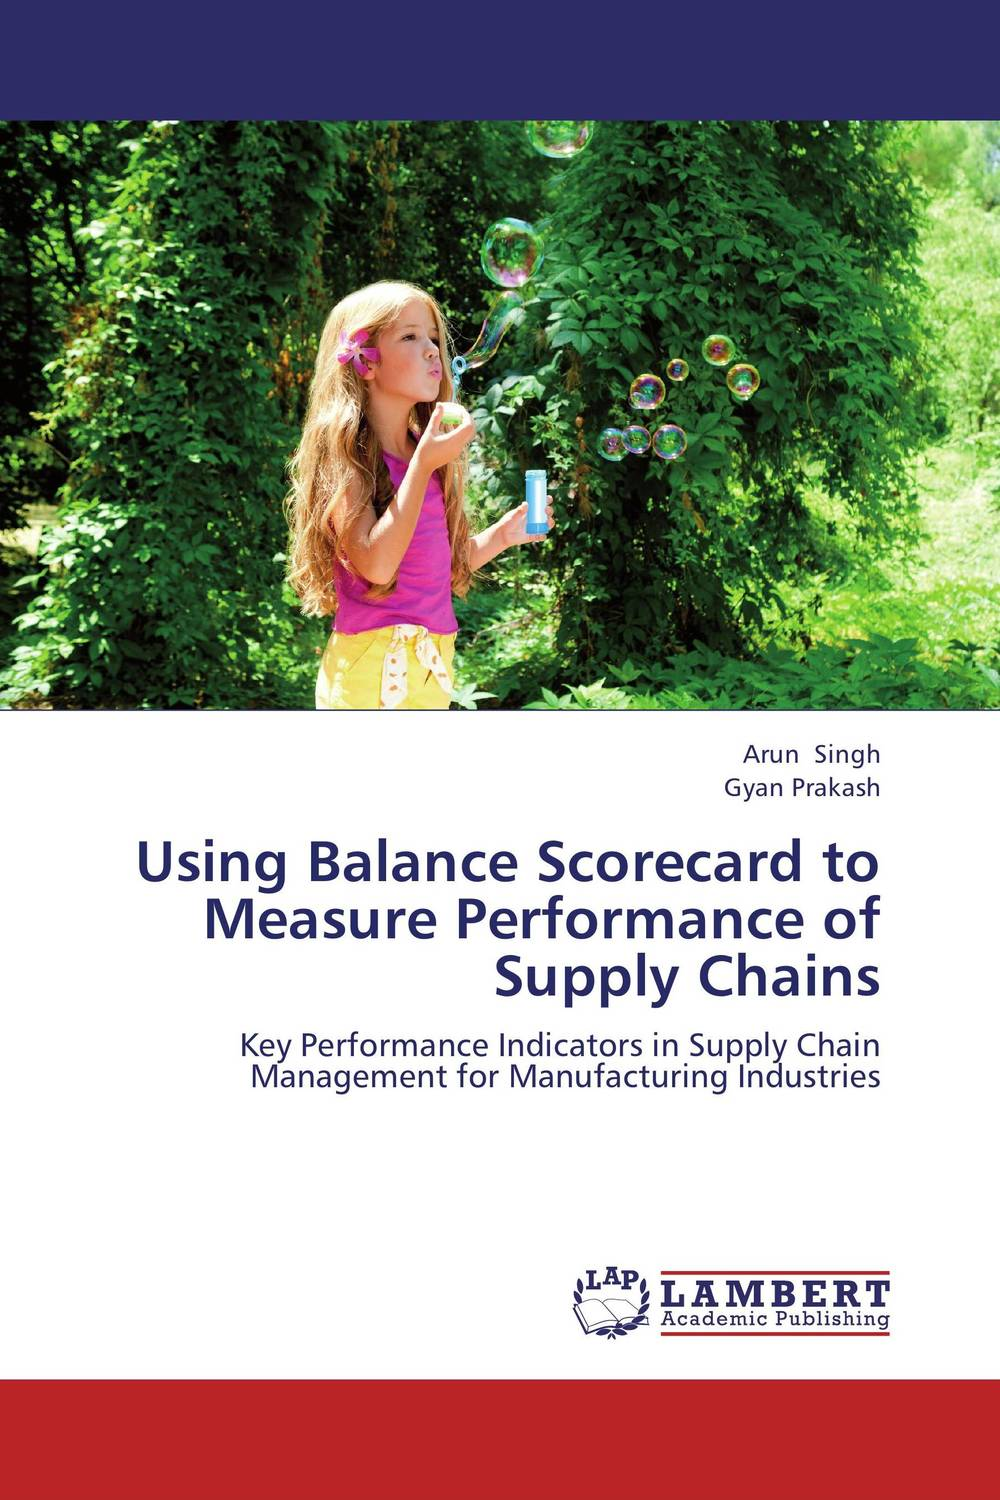 Using Balance Scorecard to Measure Performance of Supply Chains david parmenter key performance indicators